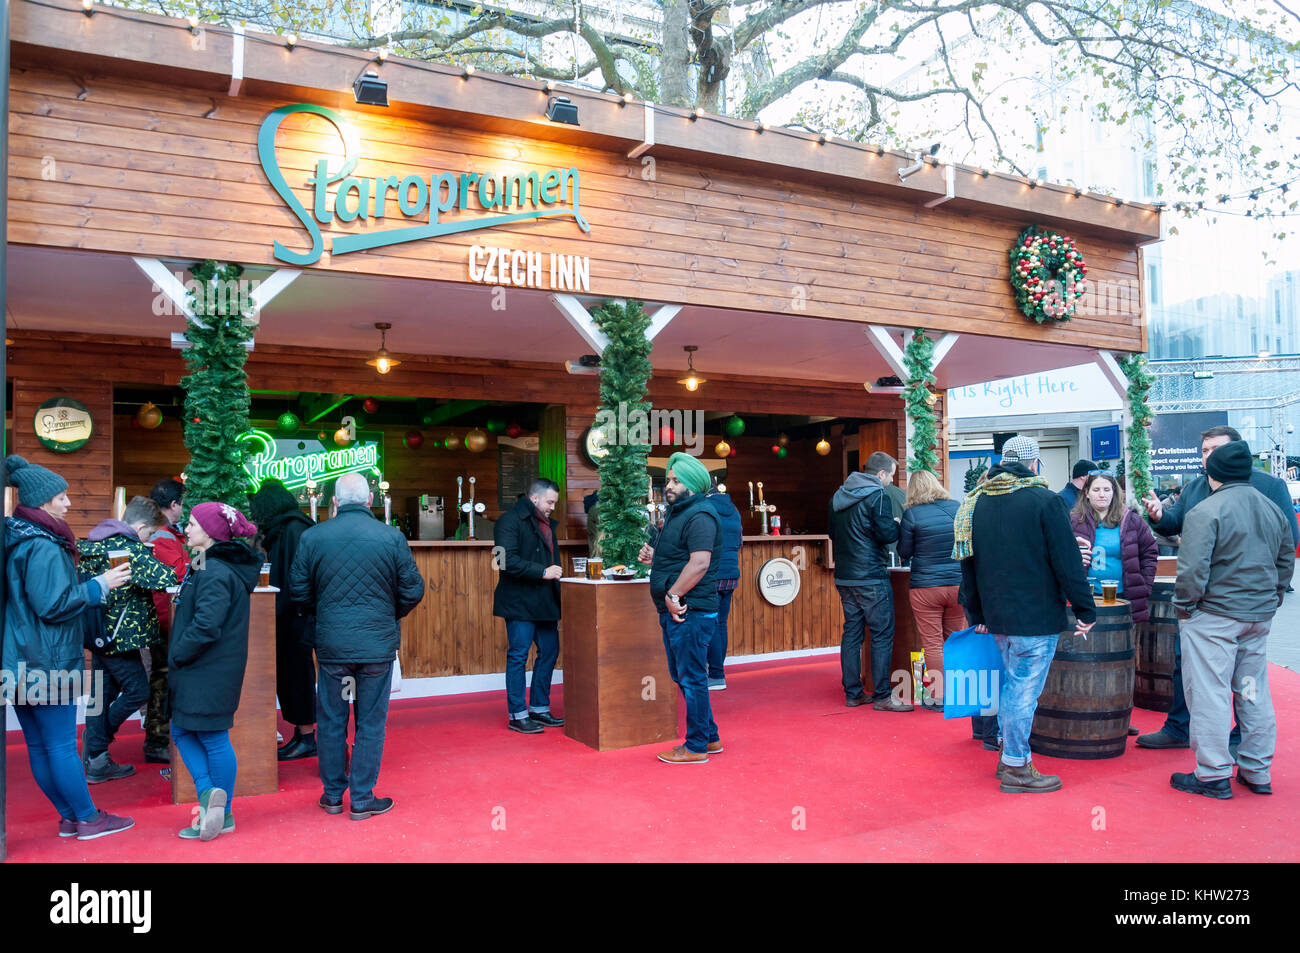 Starpromen Czech Inn at Christmas in Leicester Square, Leicester Square, West End, City of Westminster, Greater - Stock Image